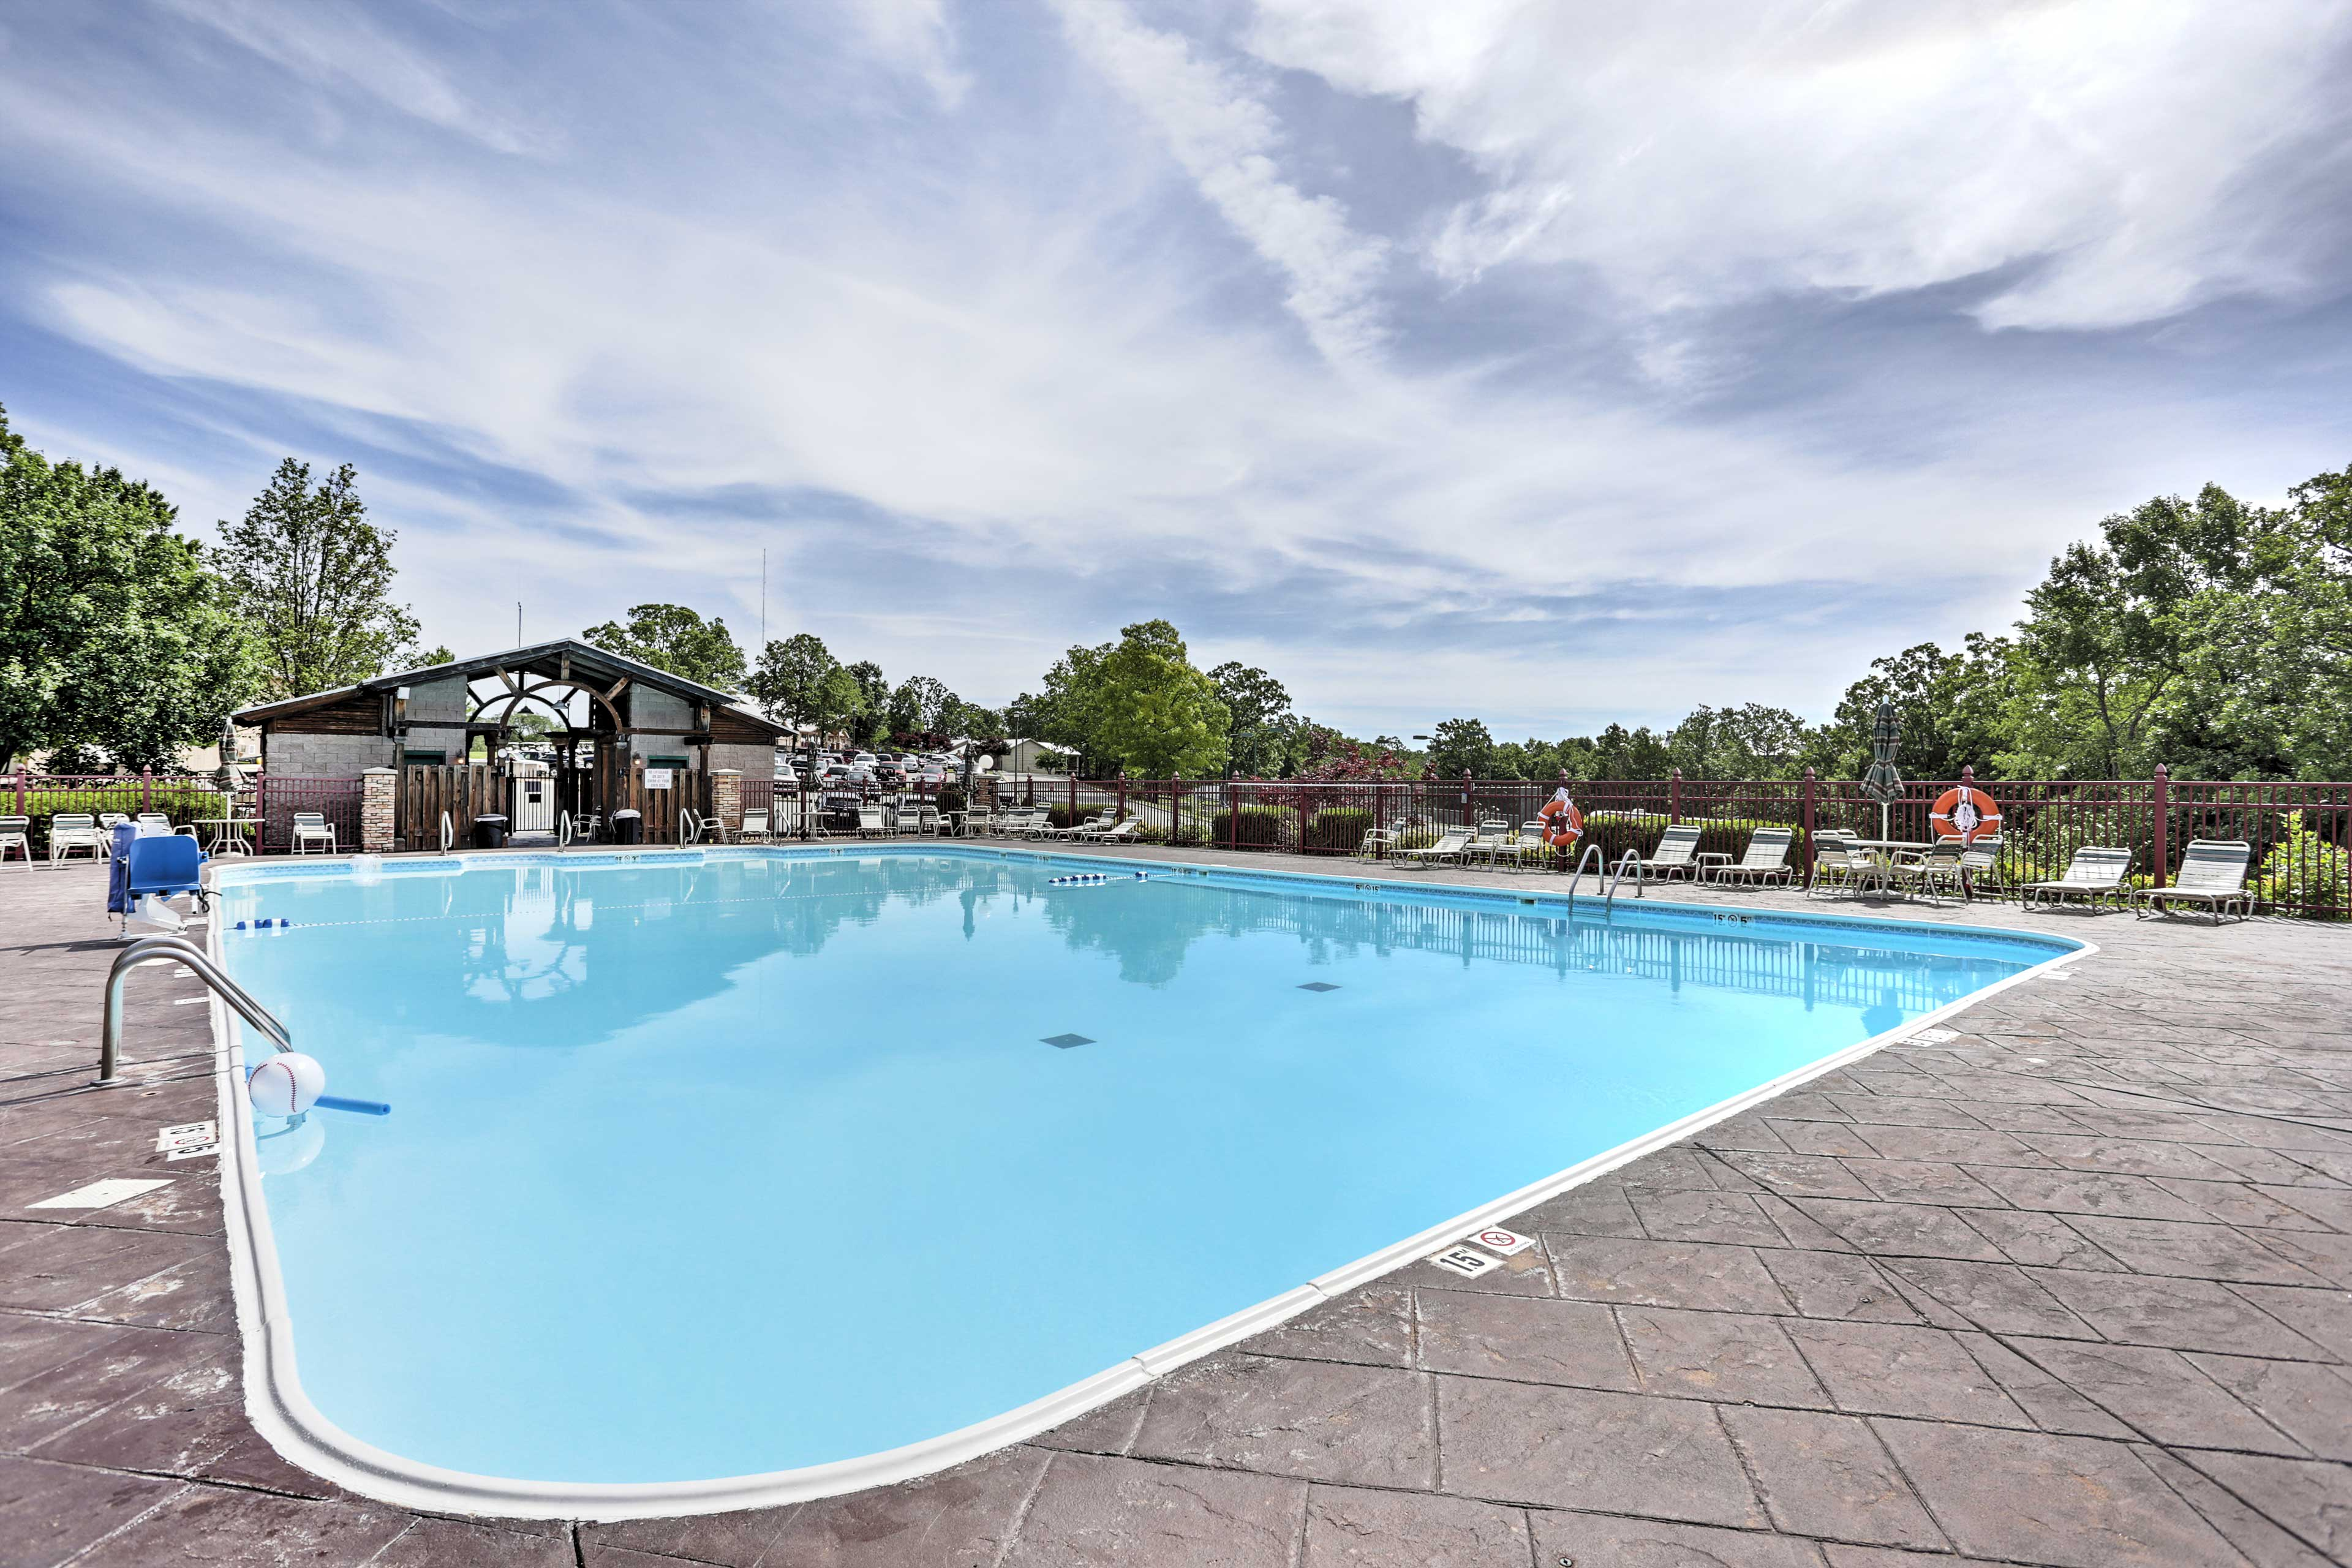 The best of Branson is all around when you stay at this vacation rental condo!